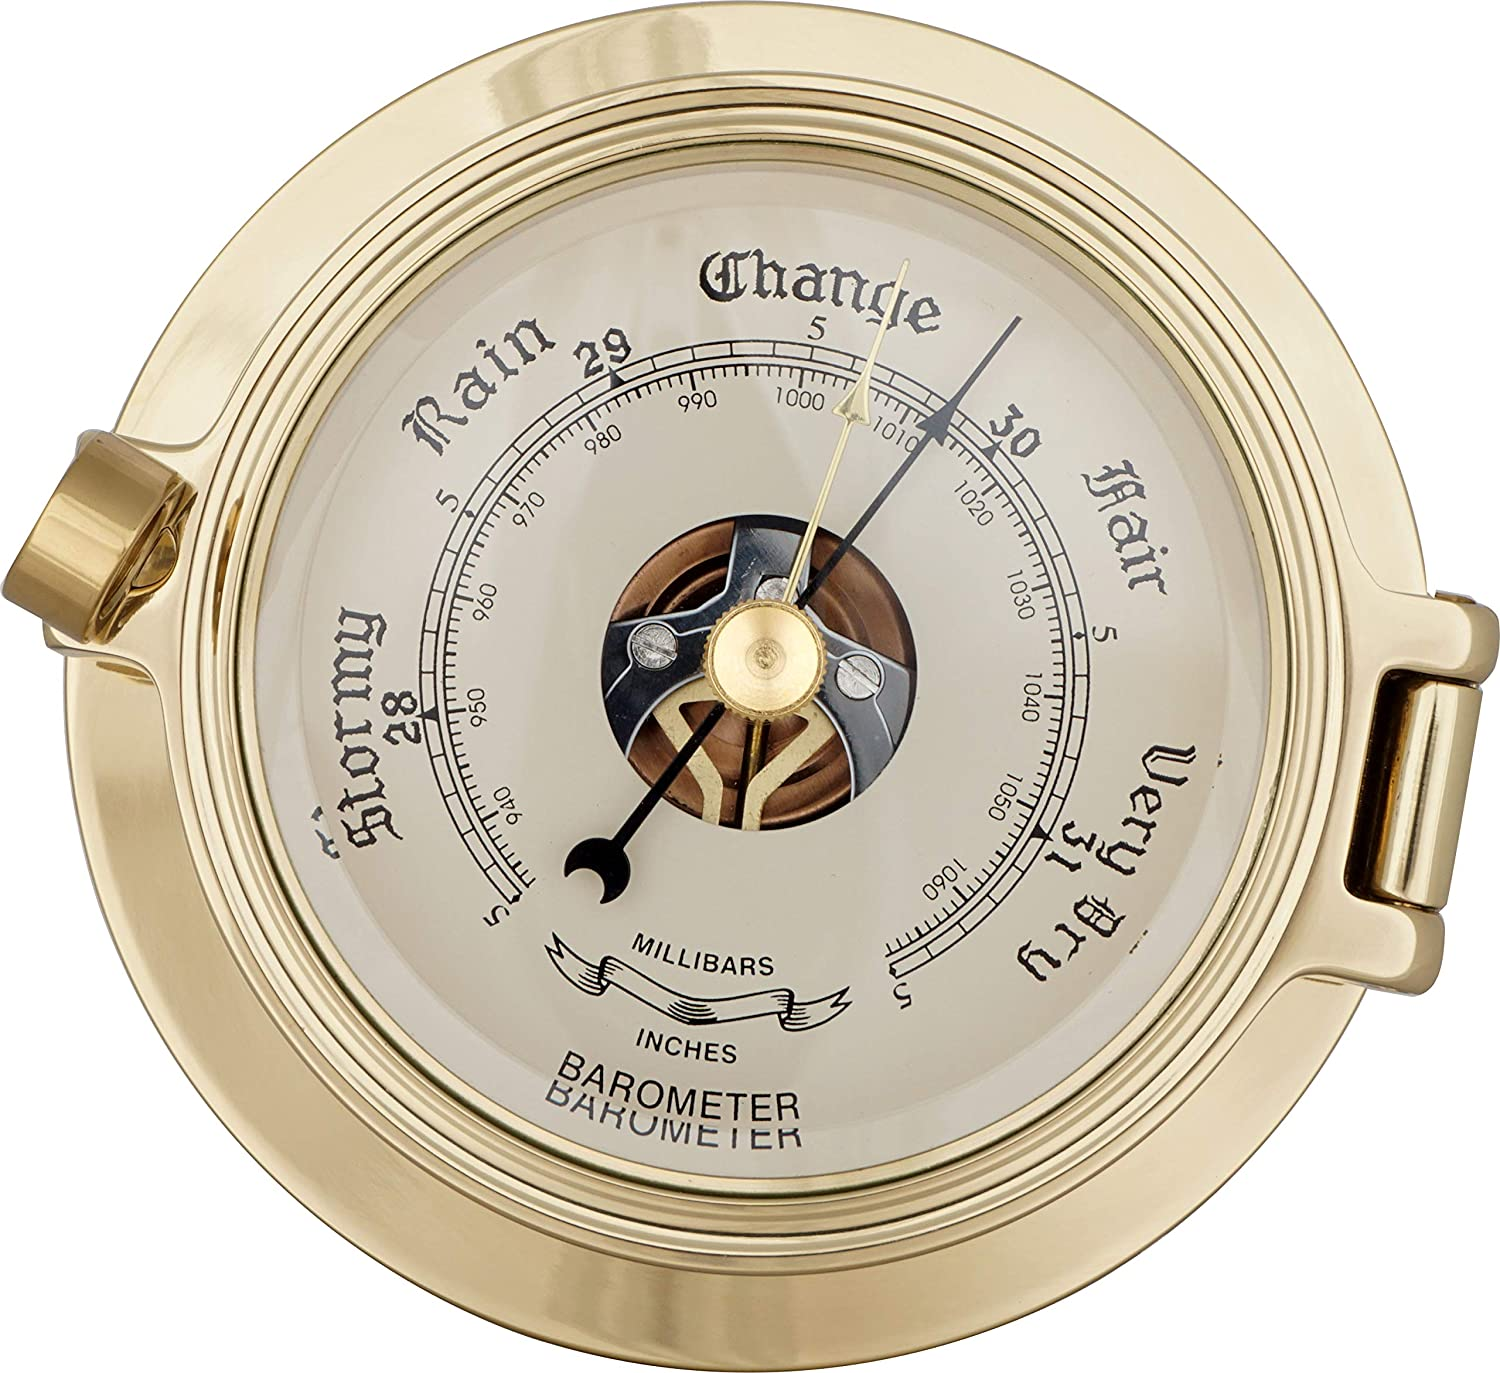 Justime 3.5 Inch Brass Latch Porthole Barometer, Nautical Wall Hanging Décor SBM-35-2-51B